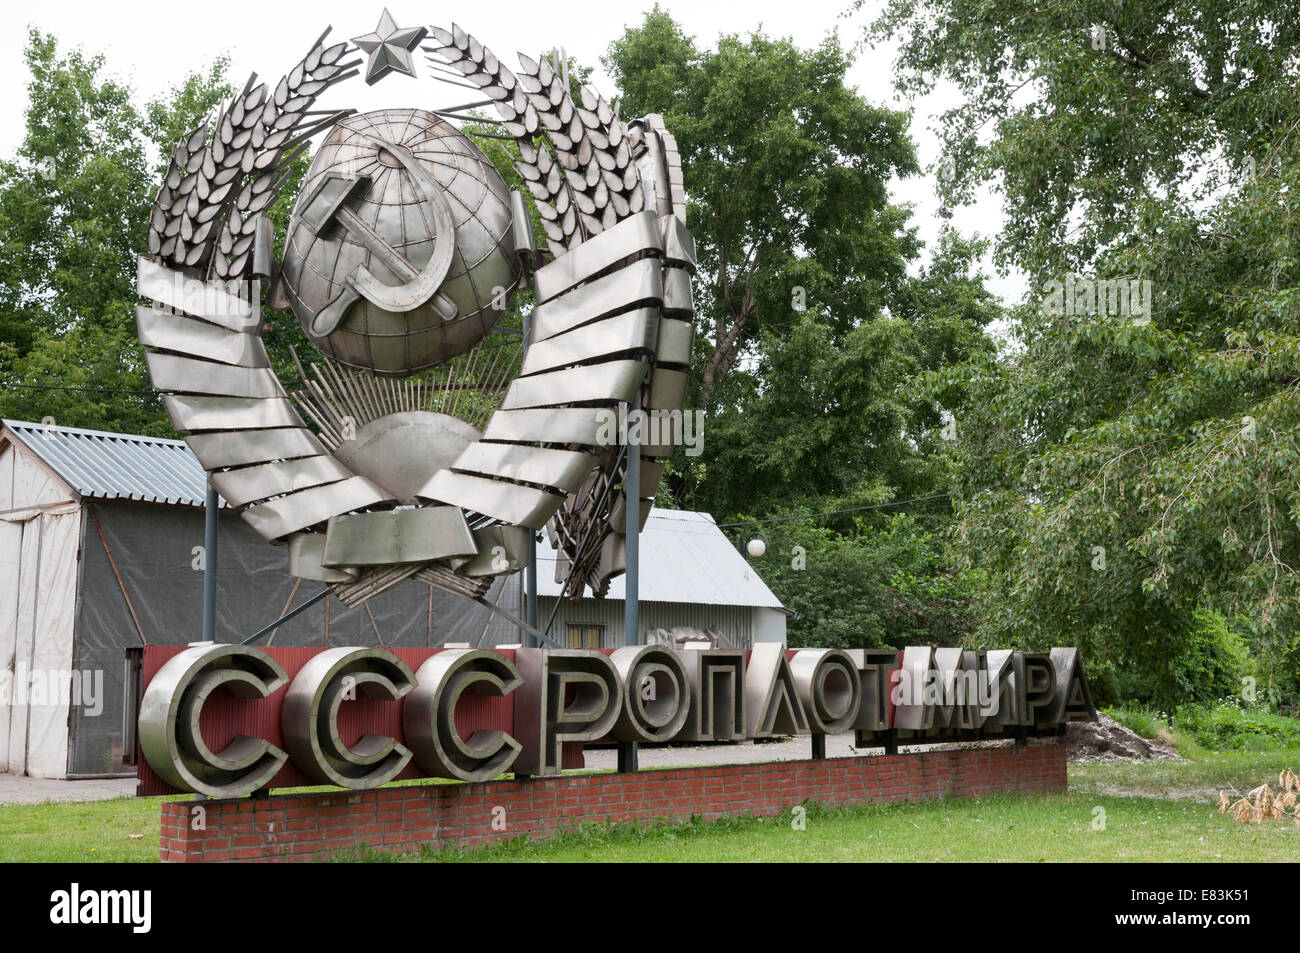 Soviet sign in Sculpture Park, Moscow, Russia - Stock Image